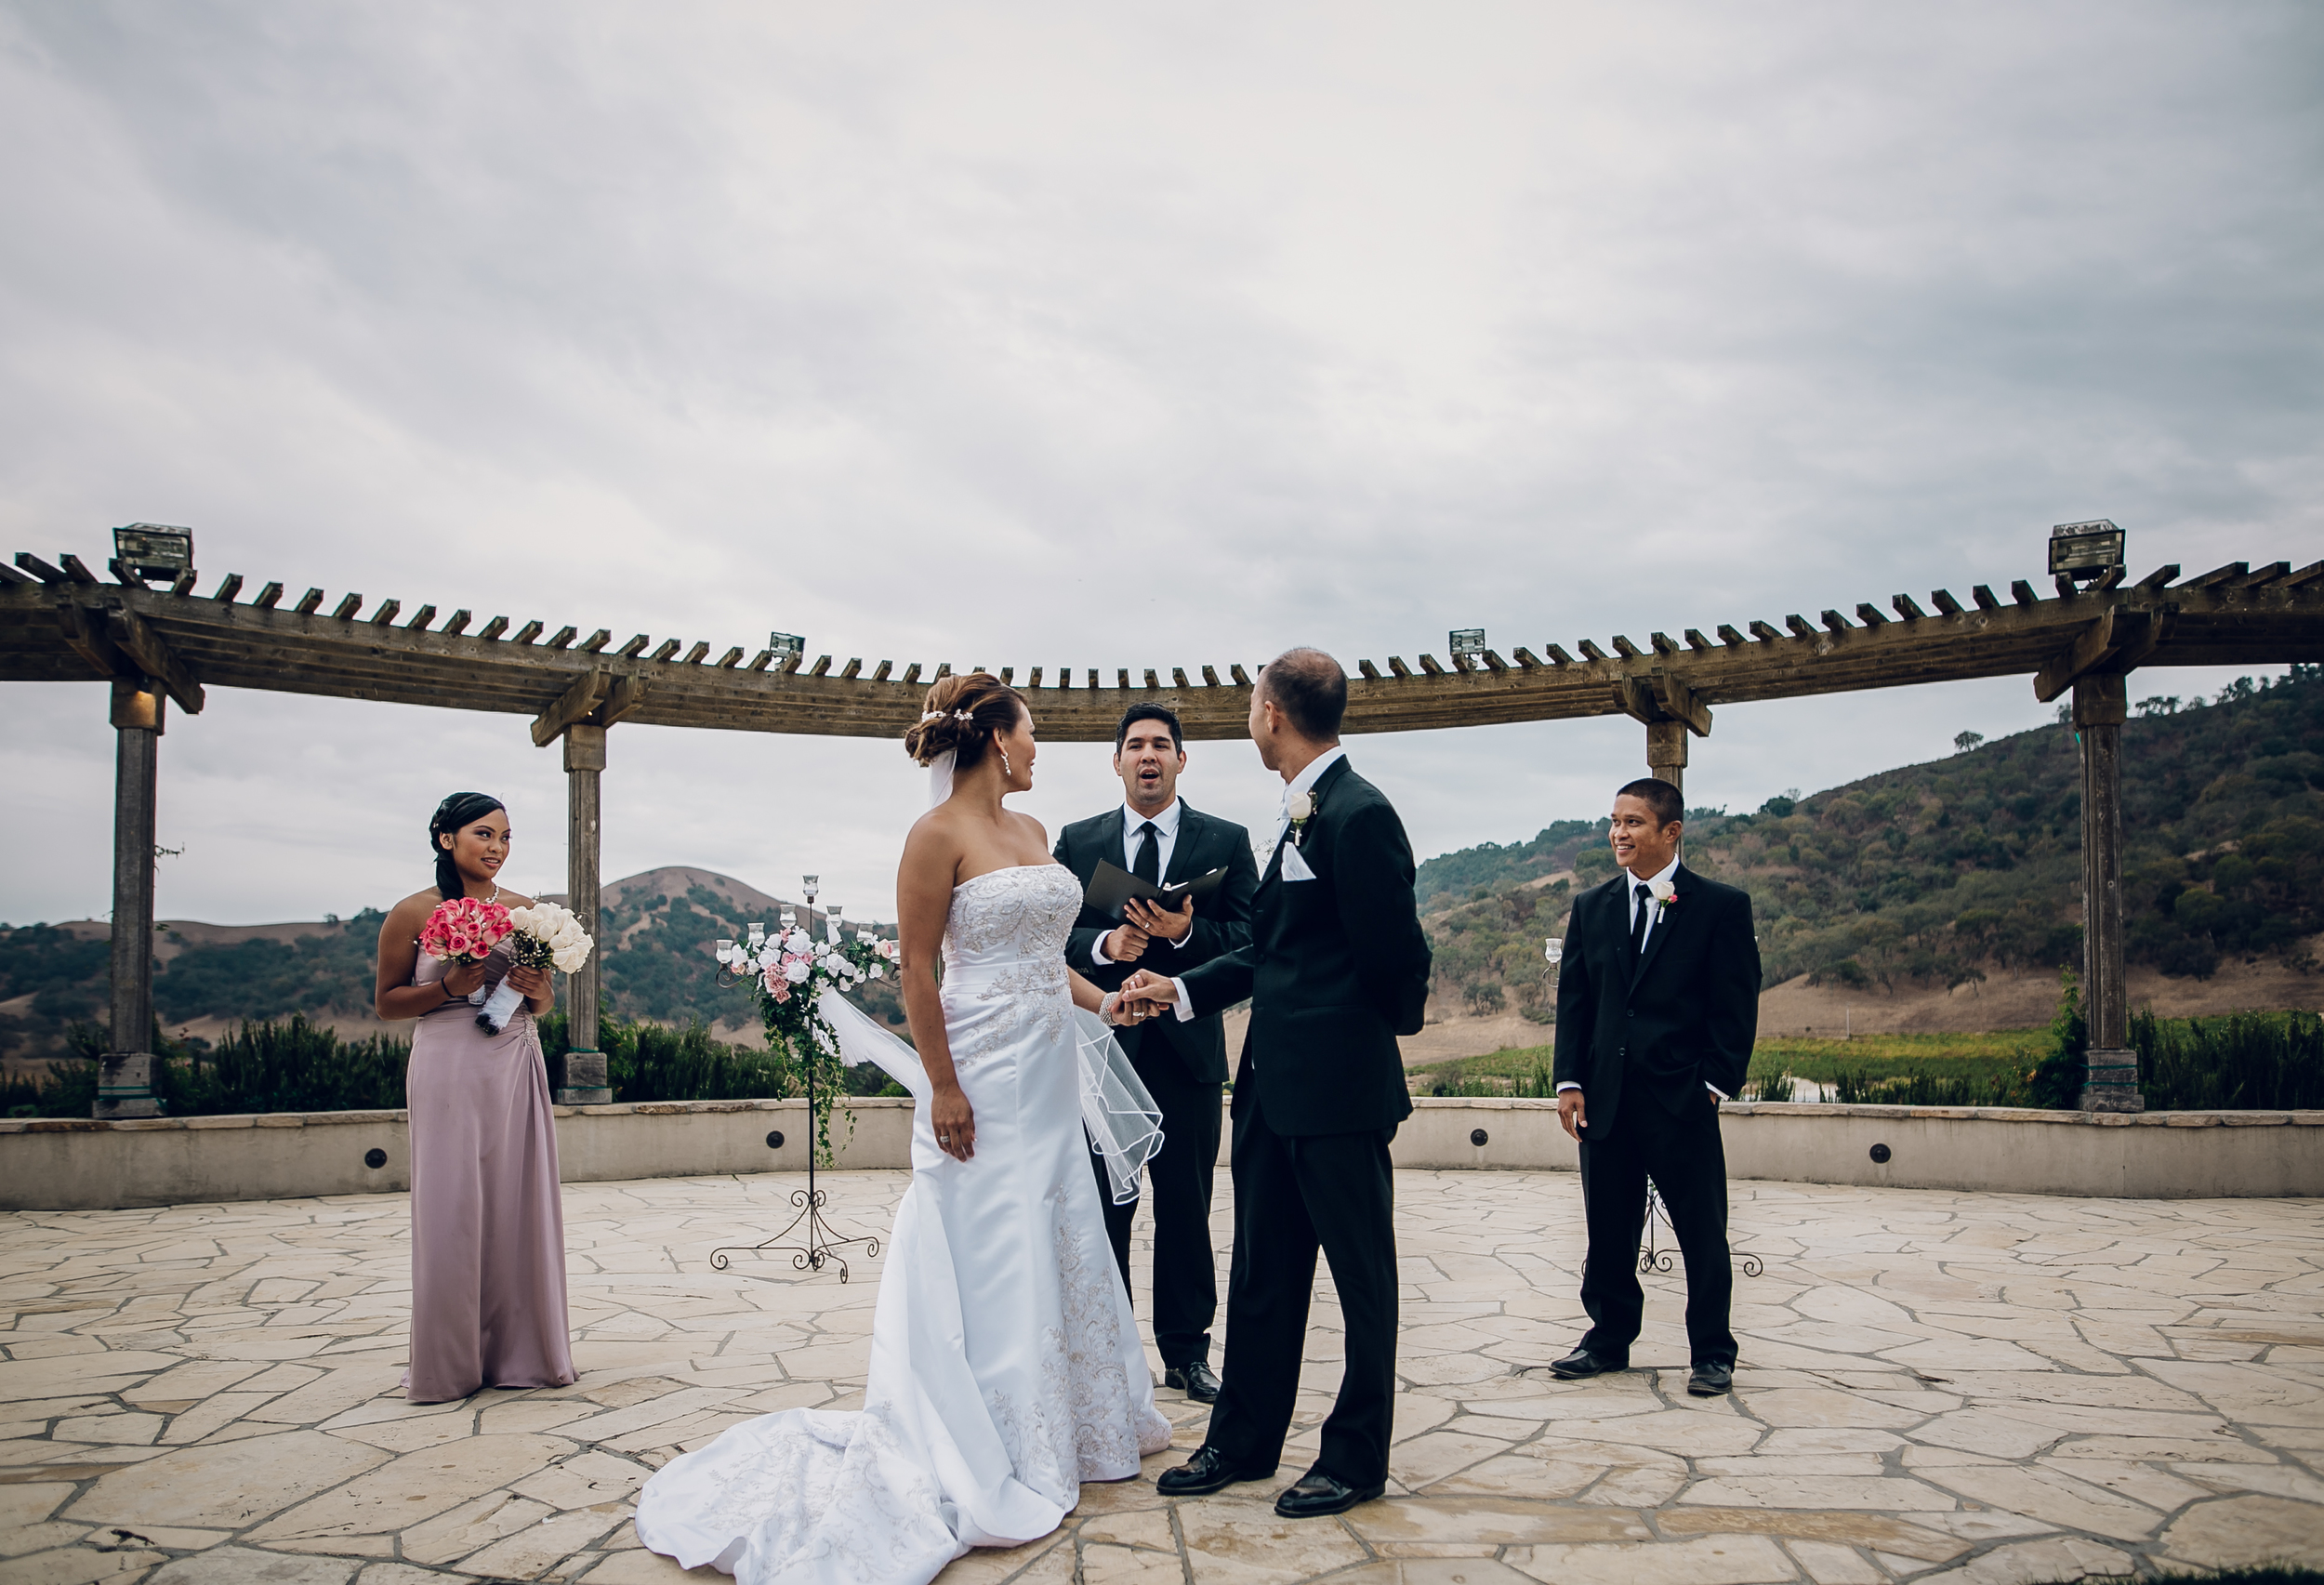 Shiela + Lester's Wedding 9-30-15 690.jpg